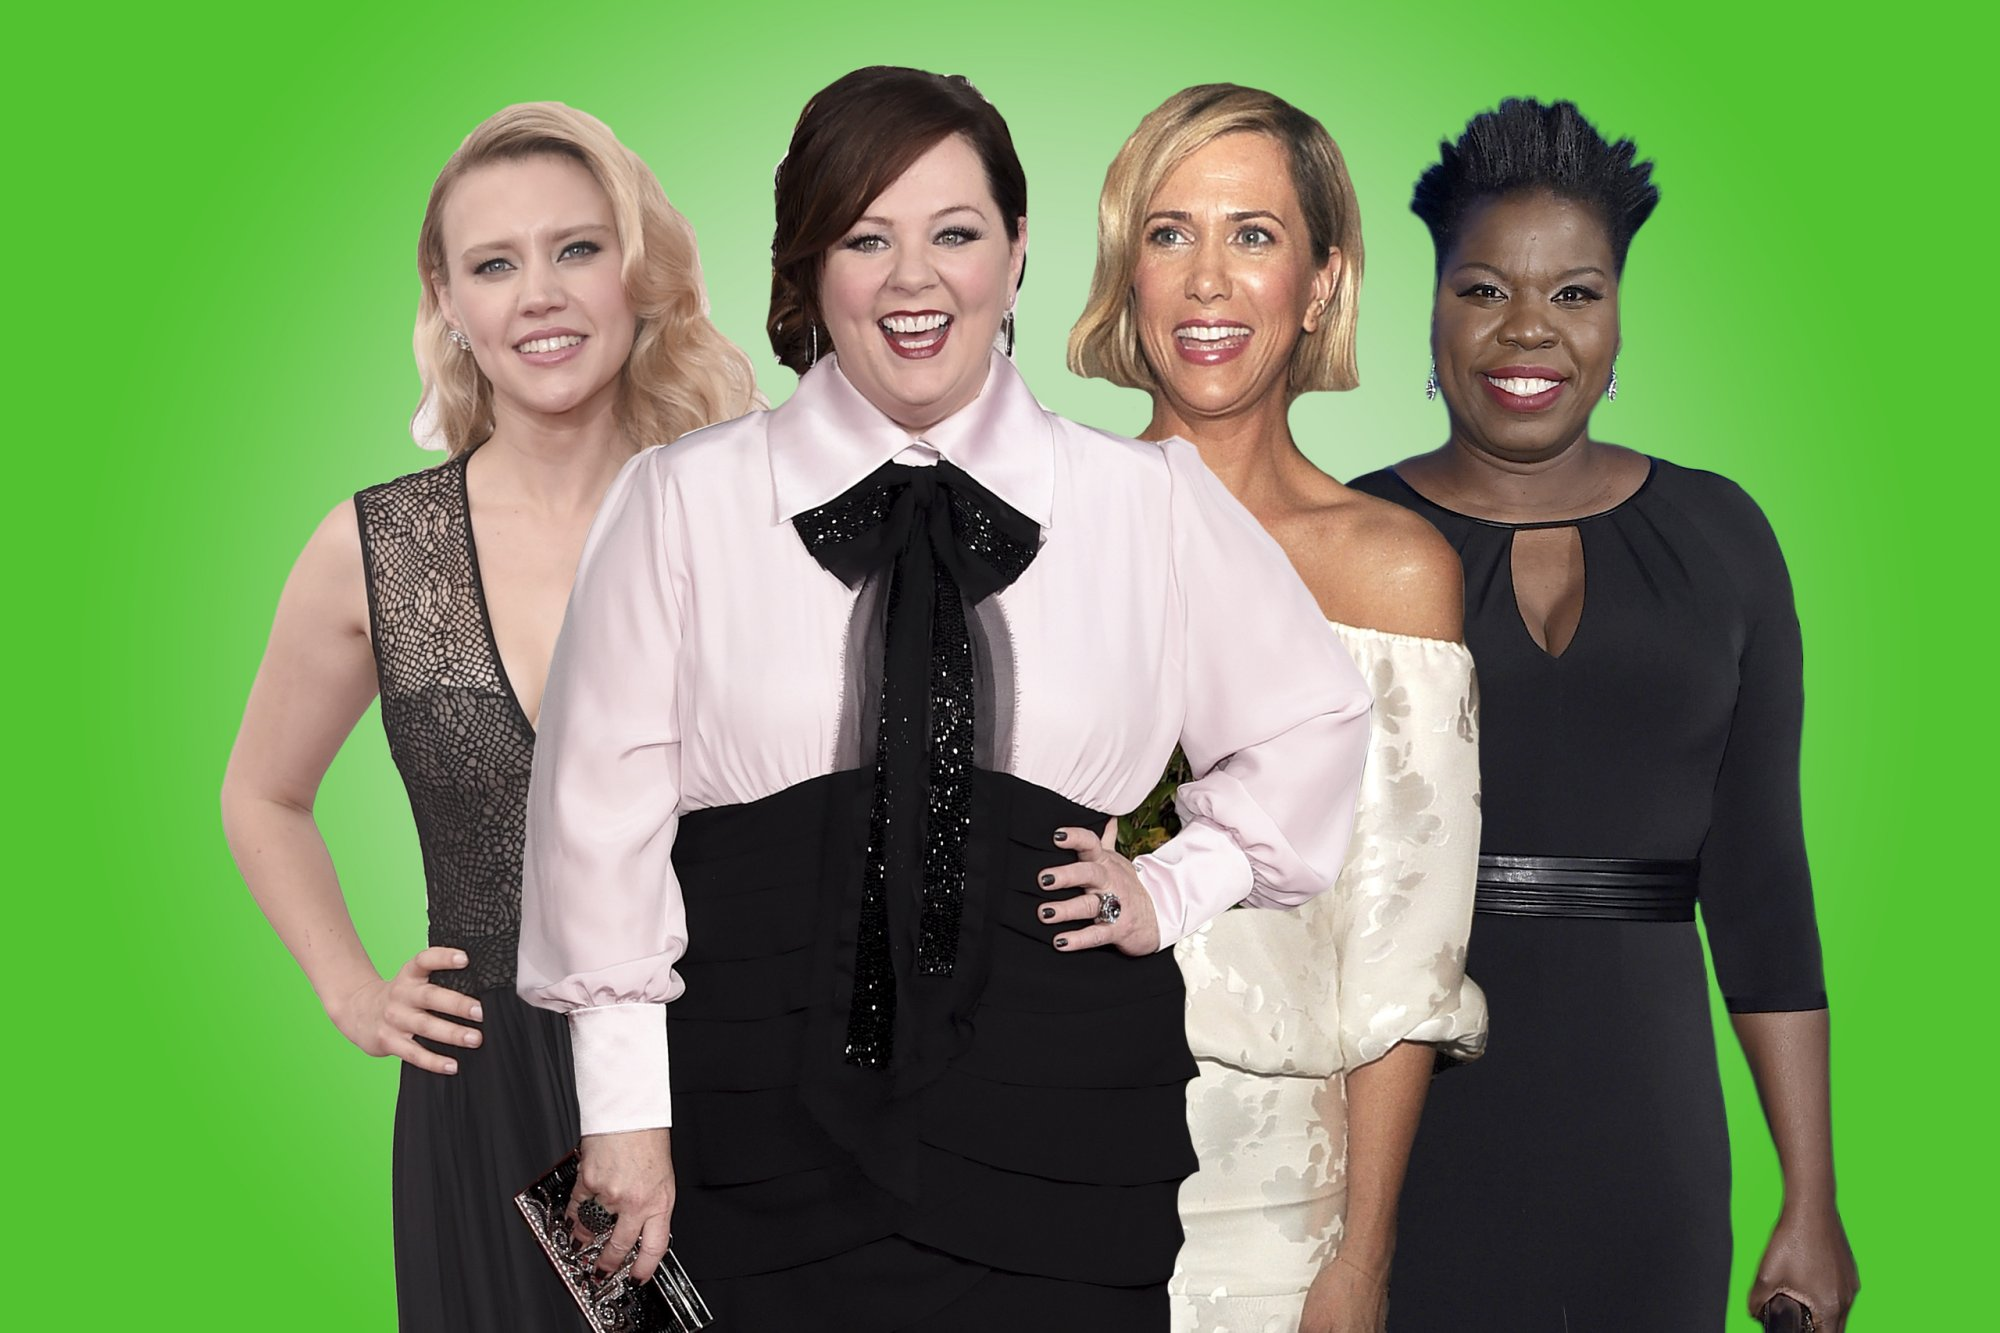 these ladies aint afraid to be ghostbusters films confirmed 2015